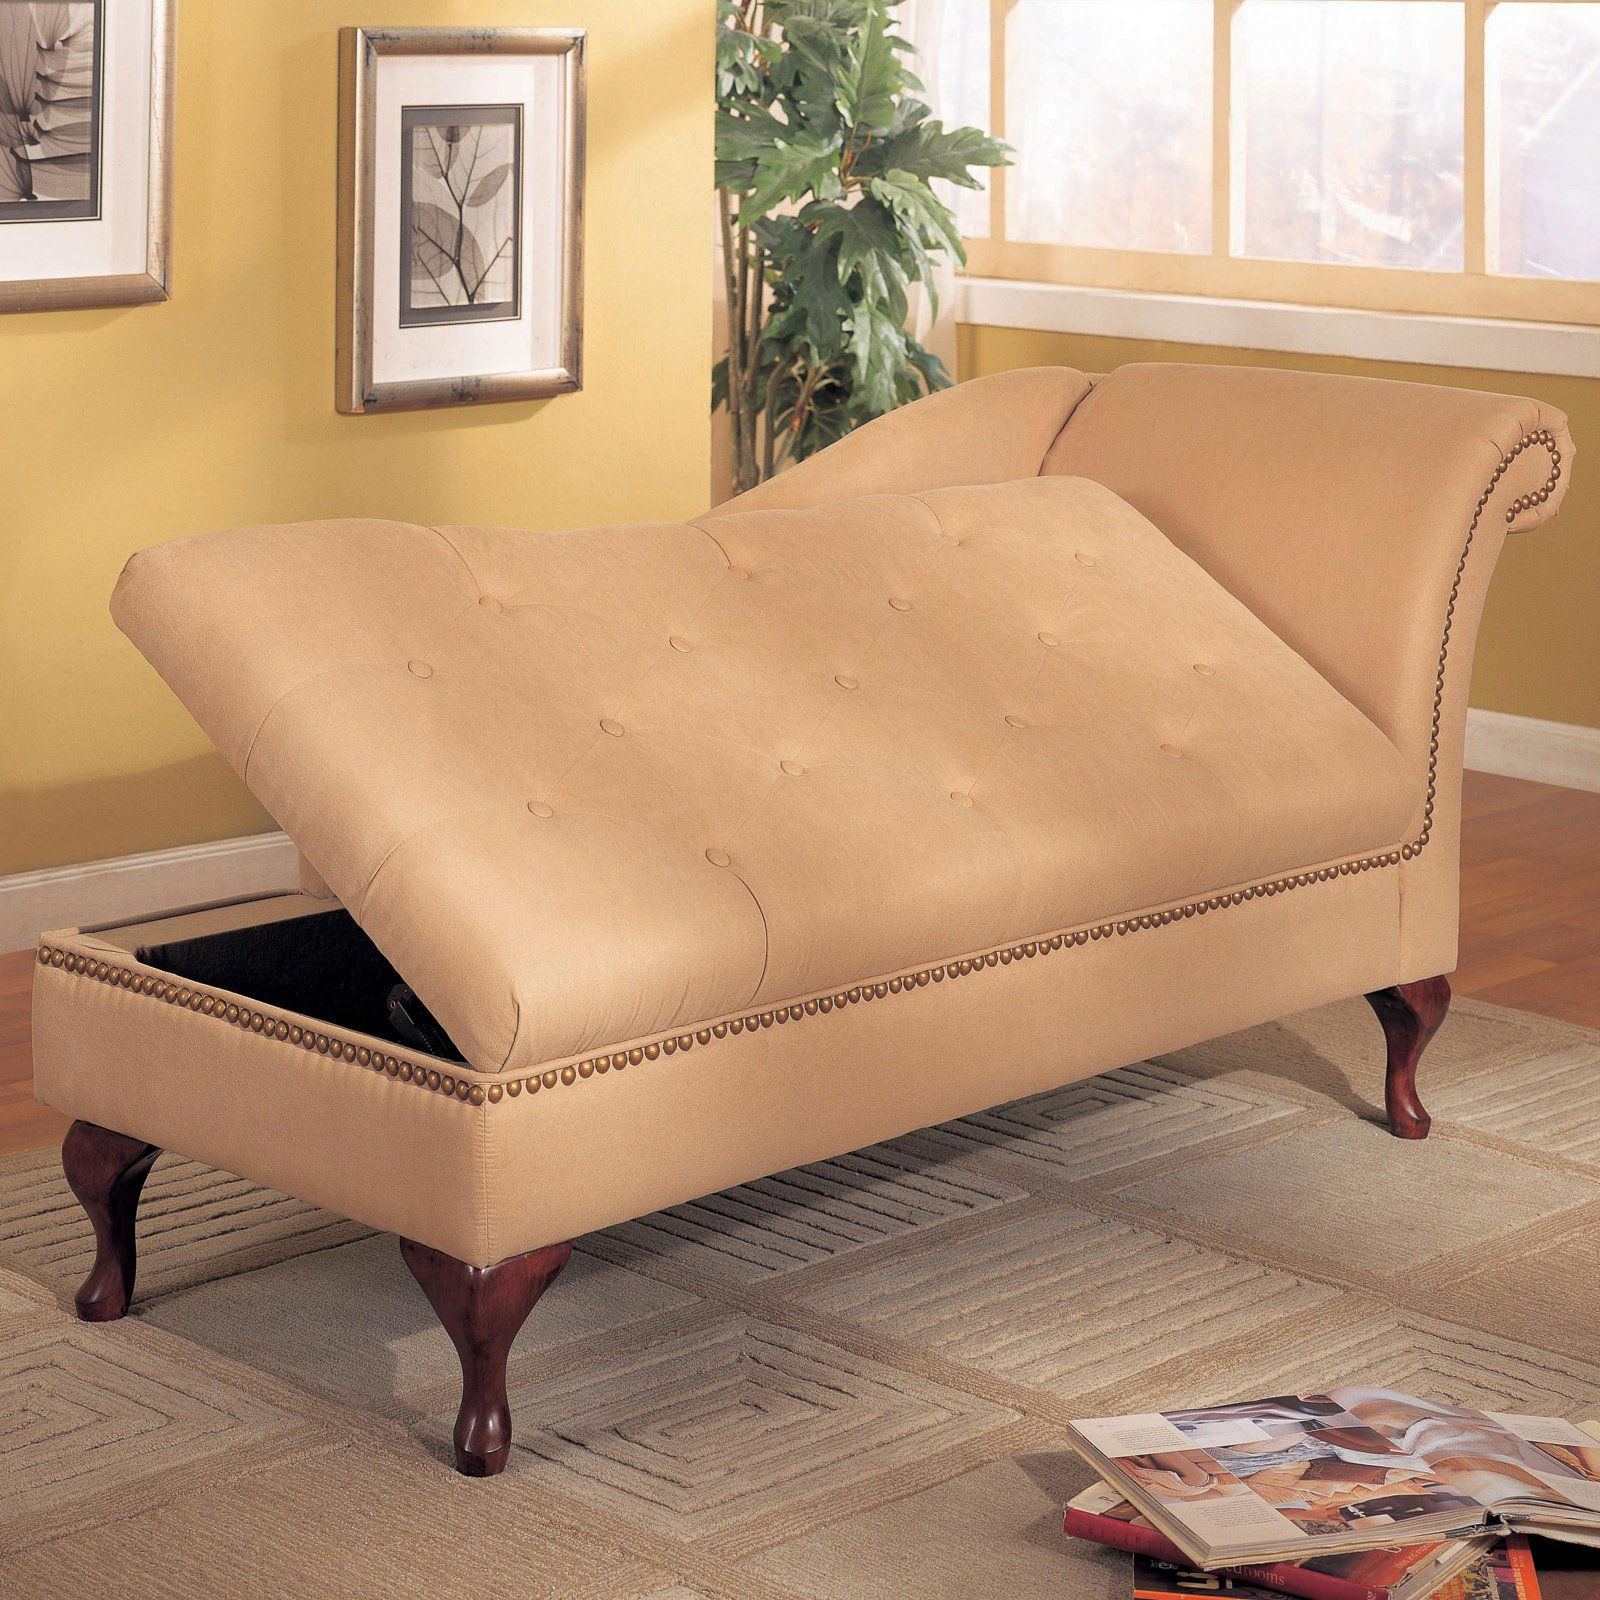 Superbe Indoor Chaise U203a Indoor Chaise Lounge With Storage Chaise Lounges Indoor Chaise  Lounges Wallpaper U203a Astonishing